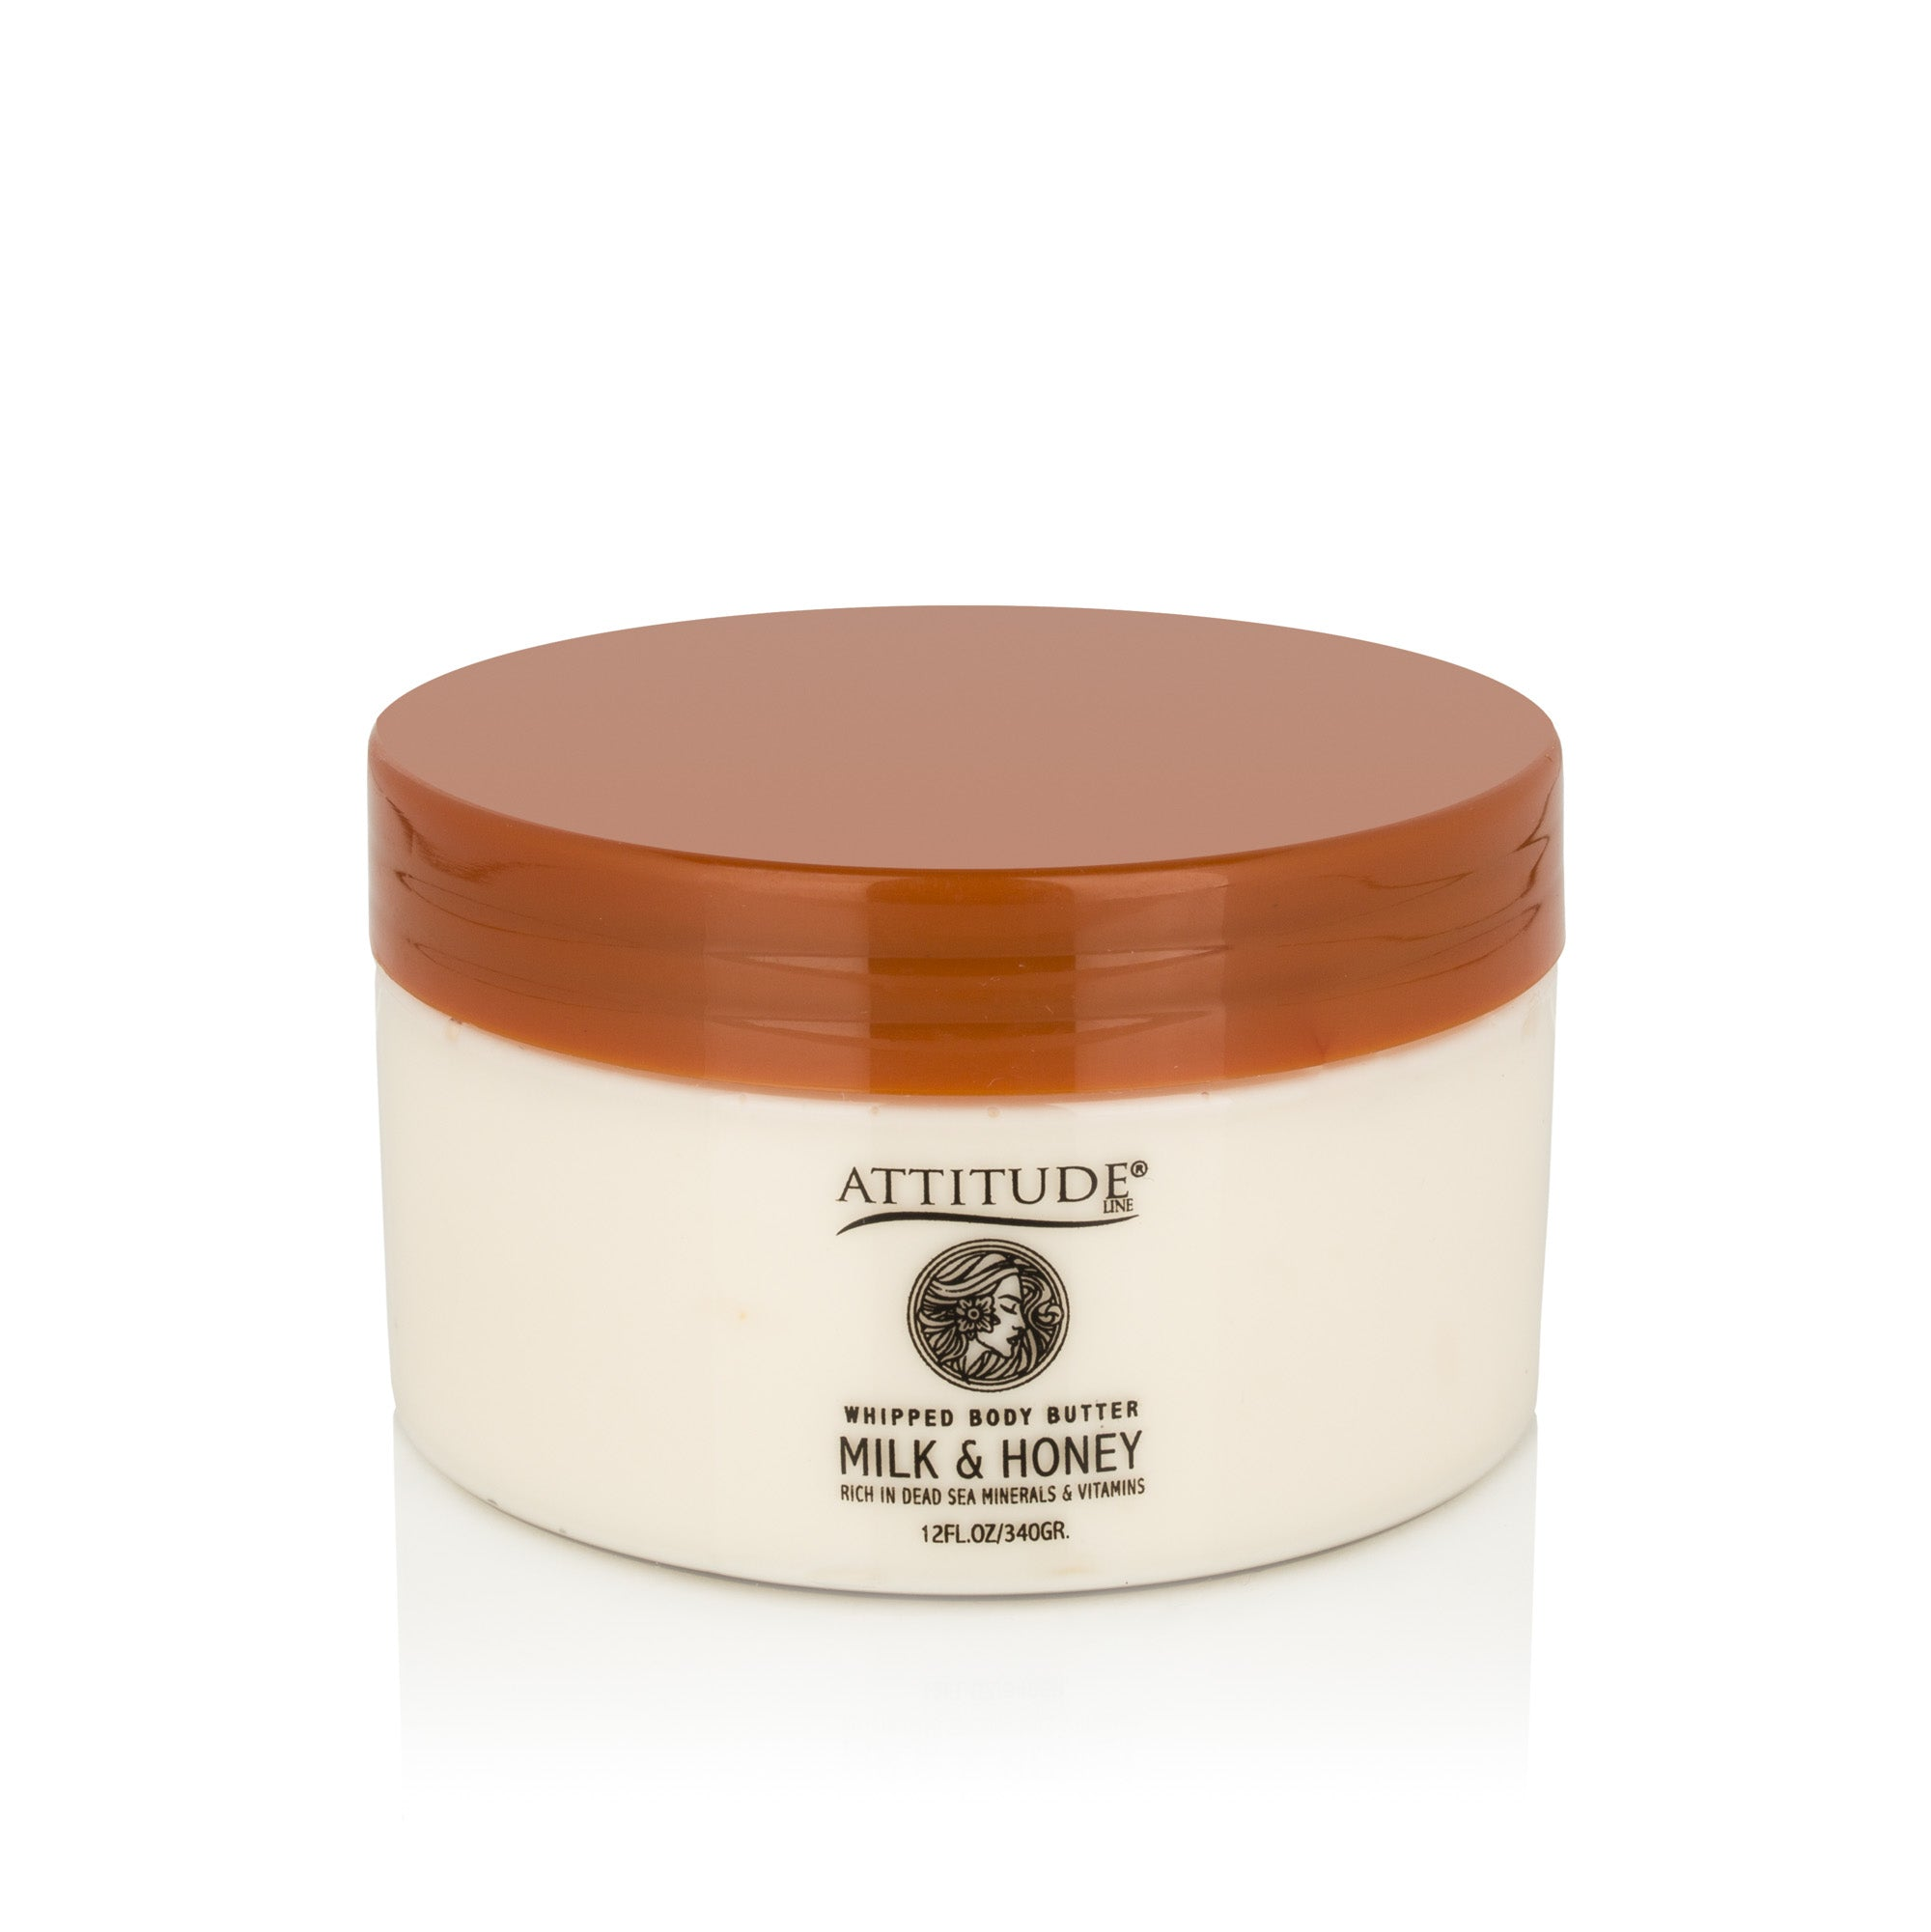 ATTITUDE - Milk & Honey Whipped Rich Body Butter